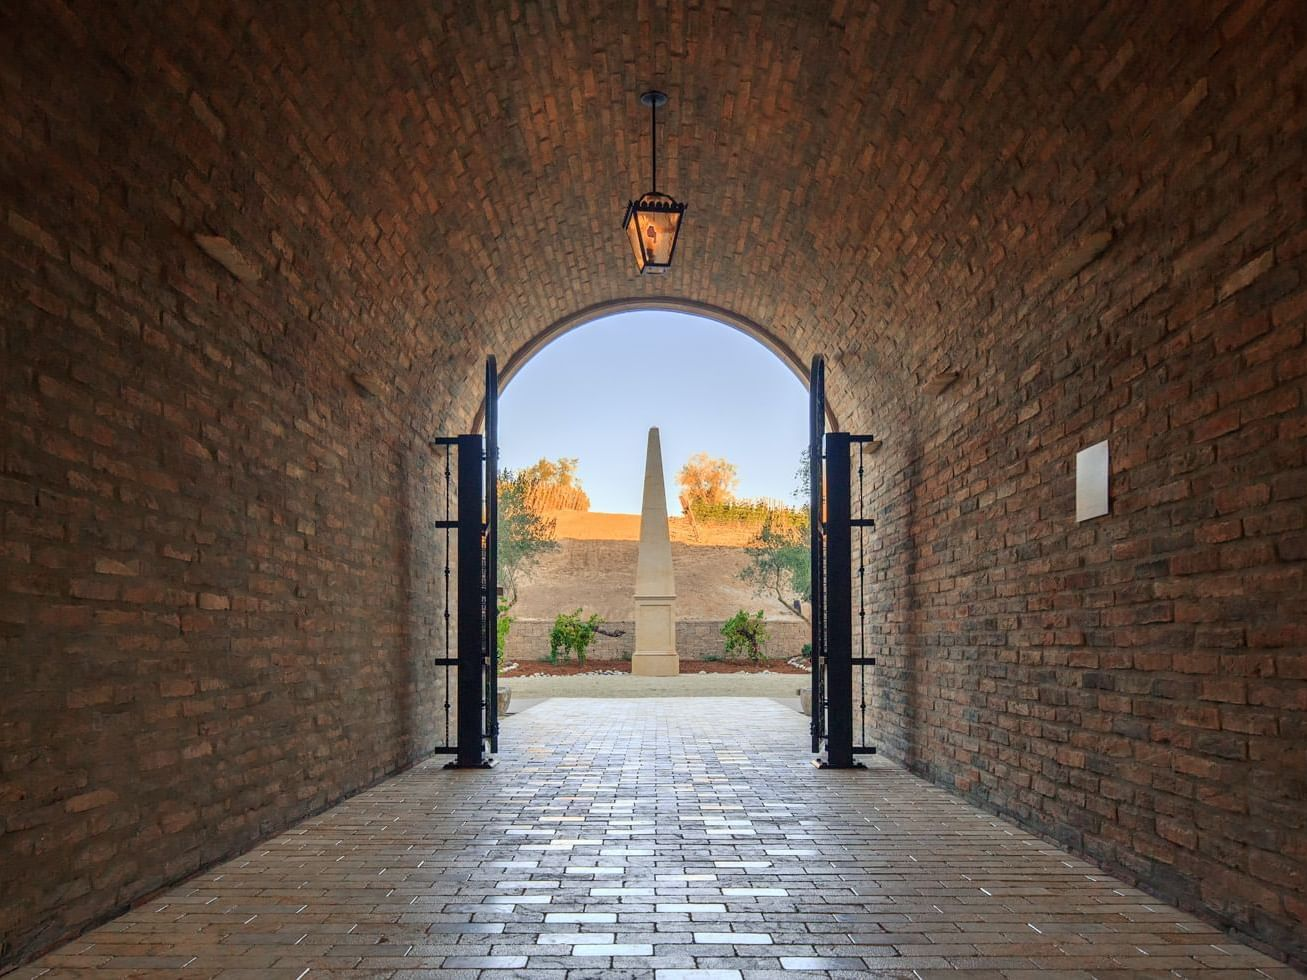 Tunnel exit to courtyard